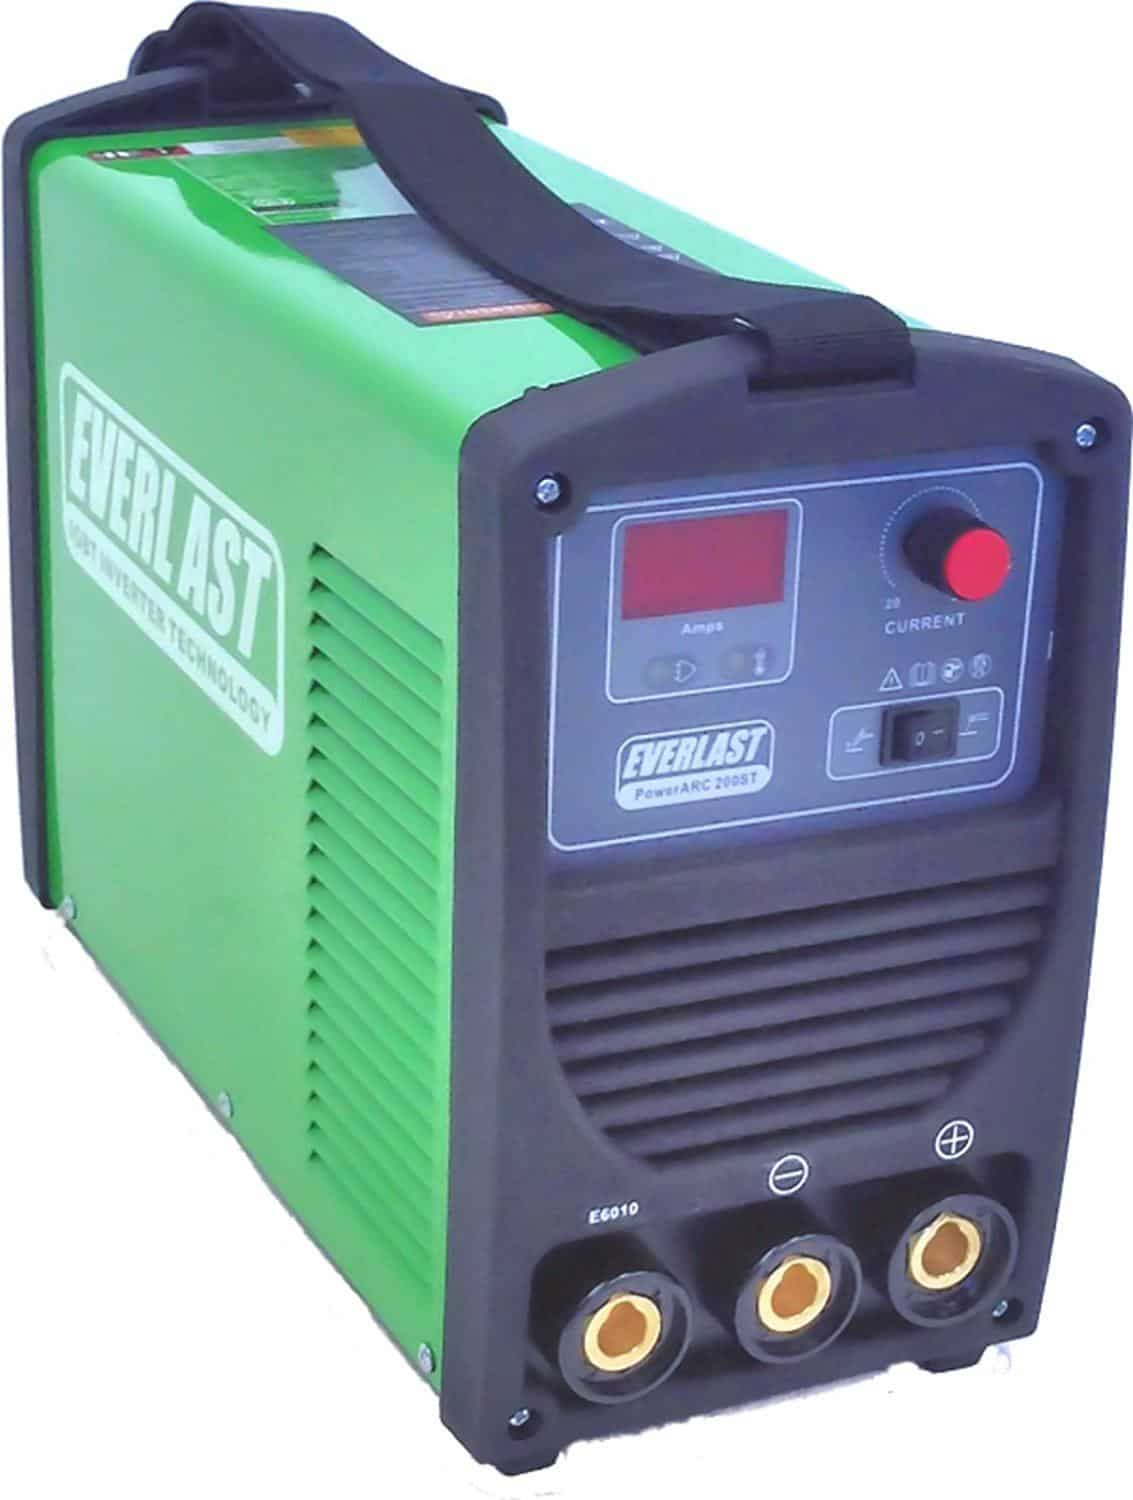 Everlast Welder Reviews: TIG, MIG & Stick Machines From This Trusted Brand